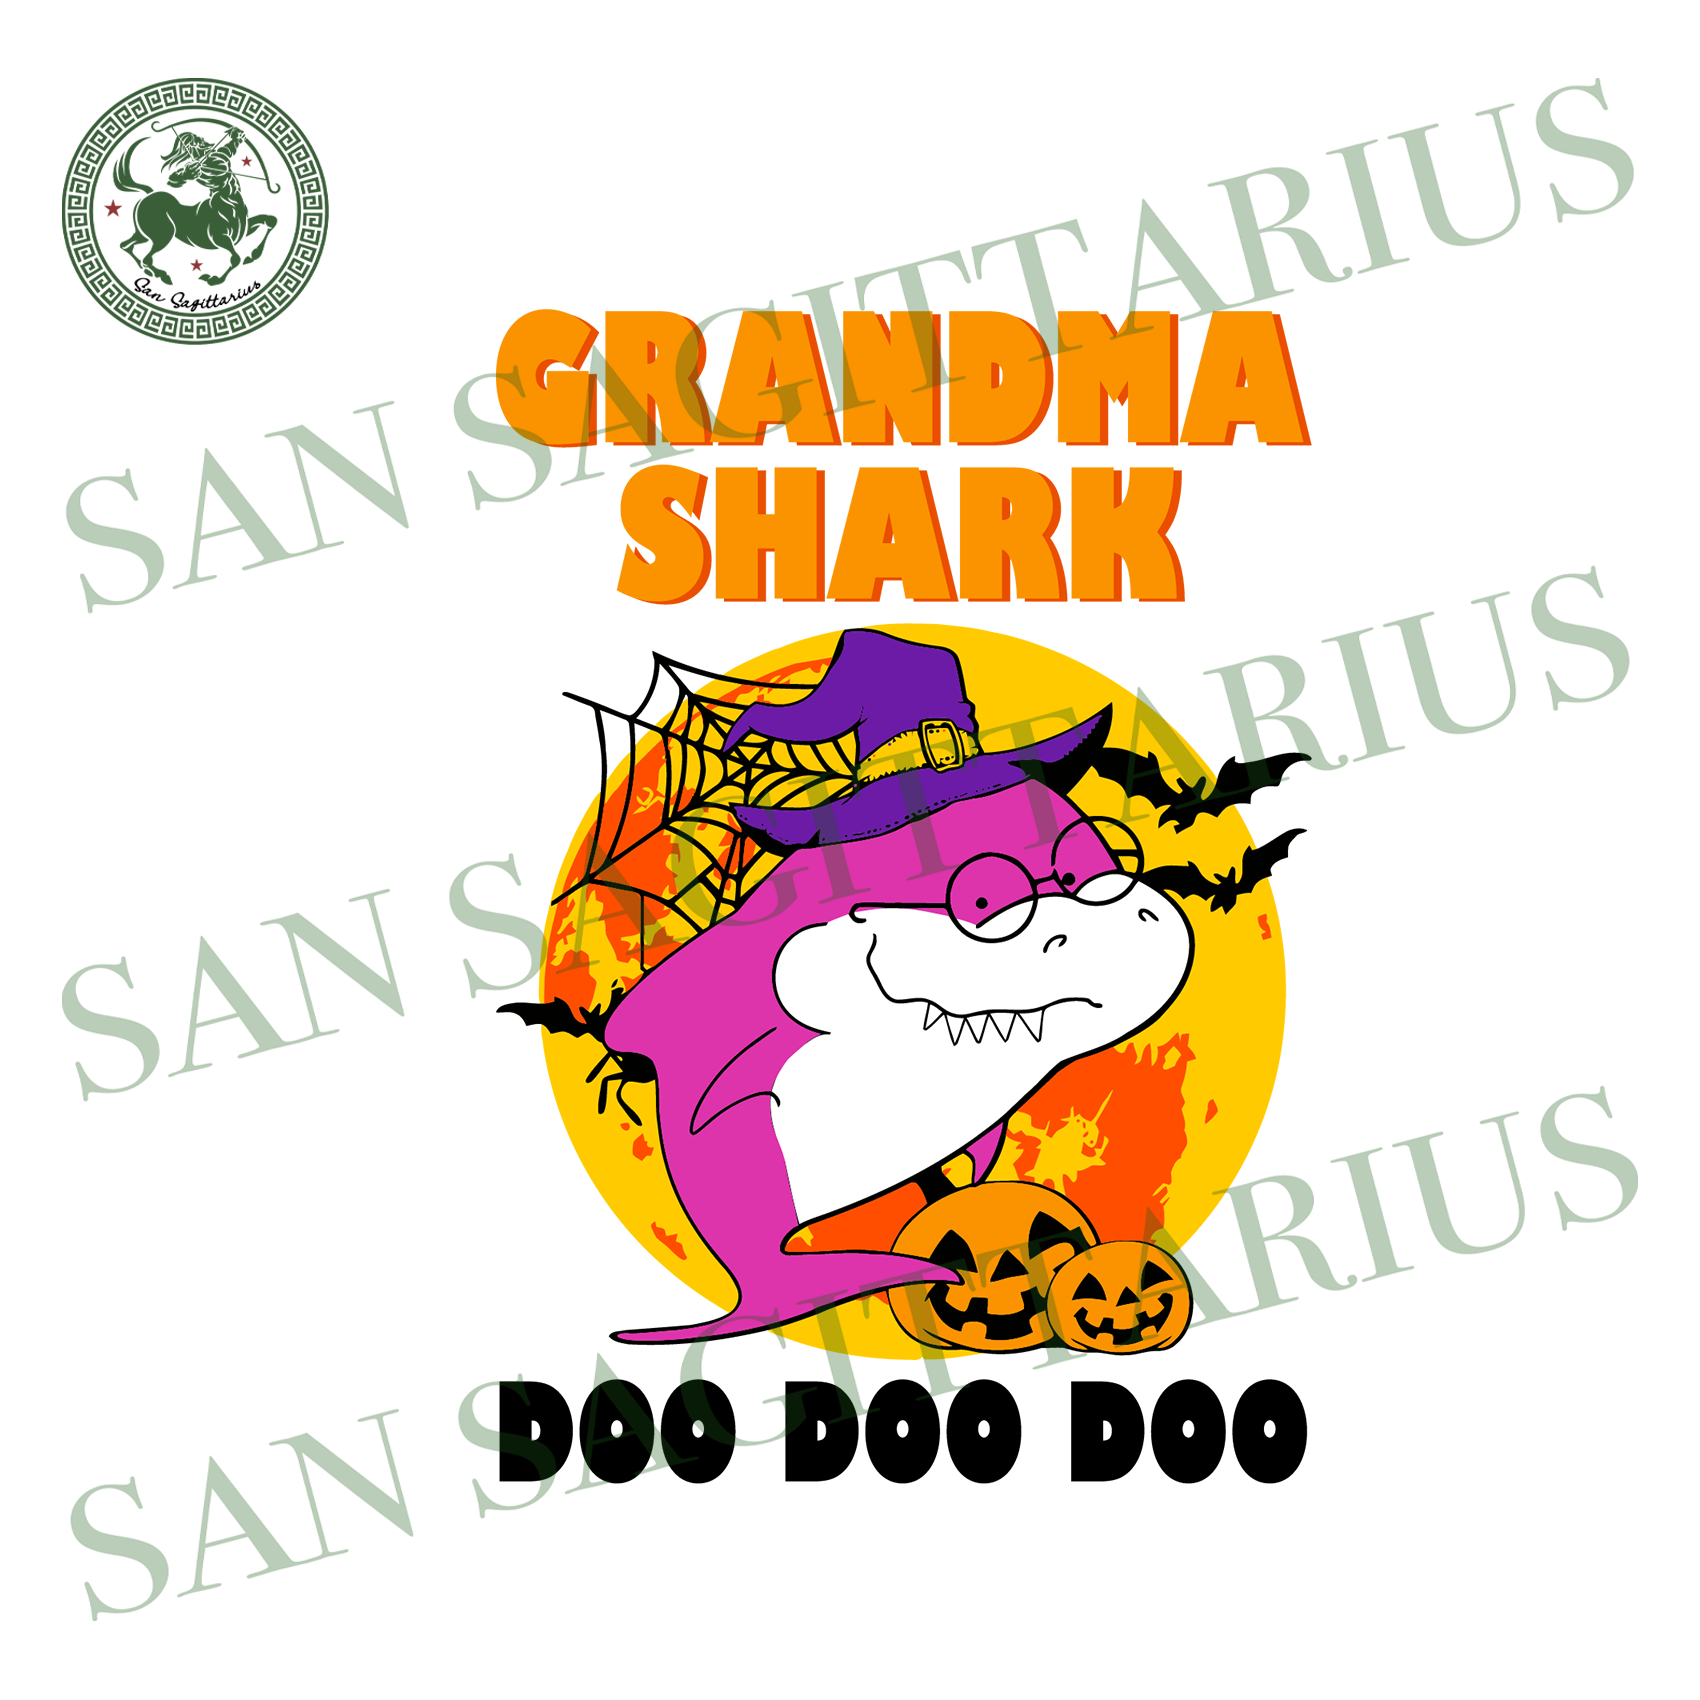 Grandma Shark Halloween SVG, Shark SVG, Shark Family SVG, Shark Birthday svg, Grandma svg, Shark Party, Doo Doo Doo svg, Halloween Gift,Shark Halloween Svg,Halloween 2020 Shirt